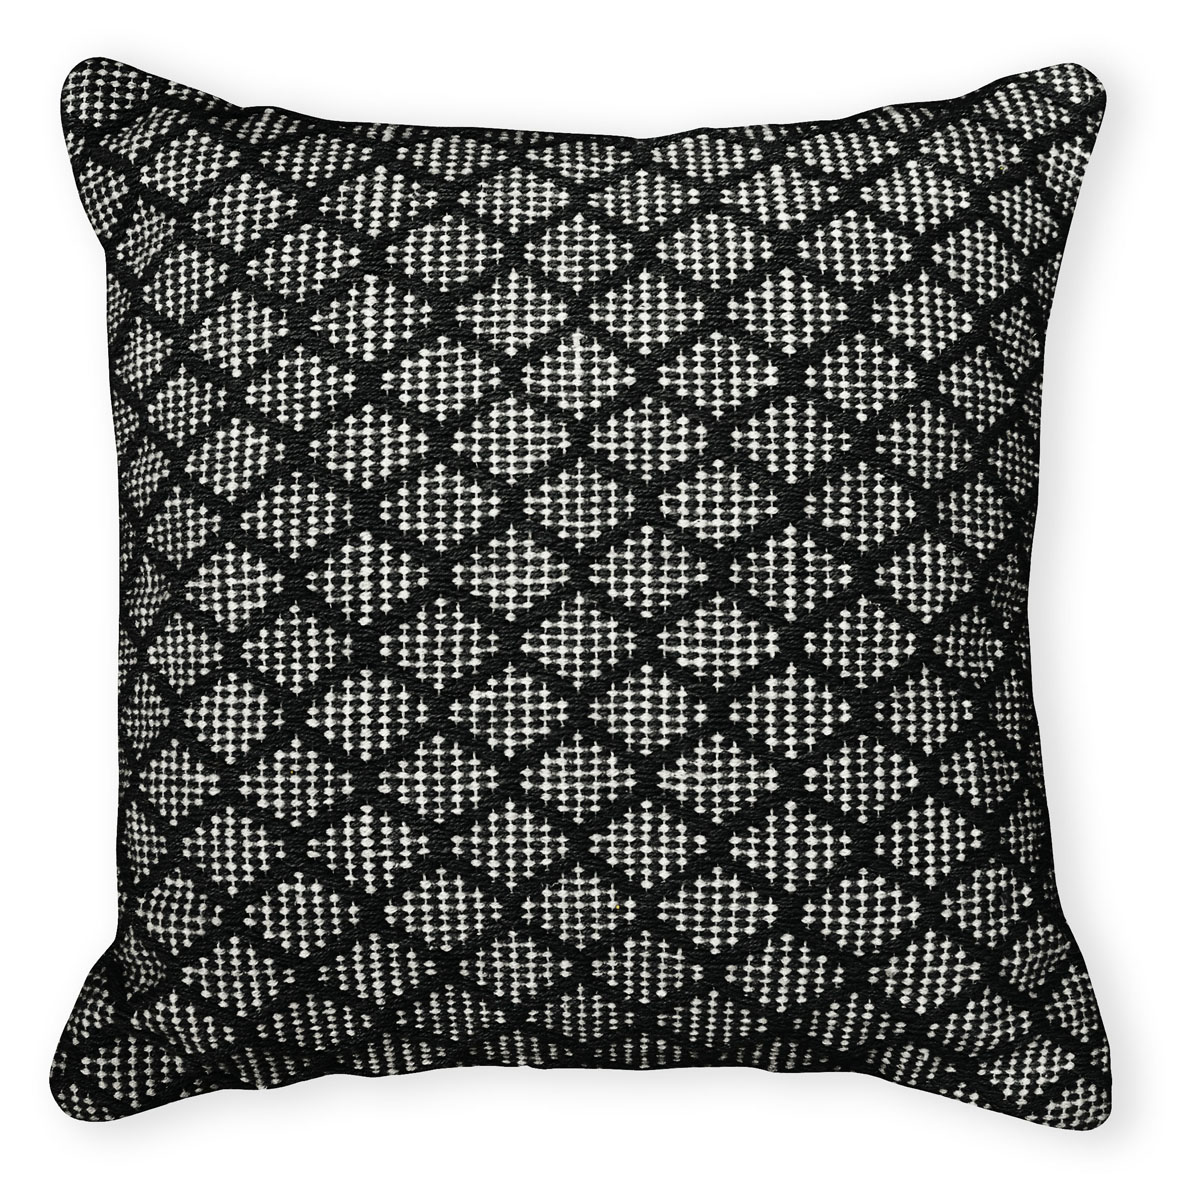 hive cushion next home furnishings. Black Bedroom Furniture Sets. Home Design Ideas